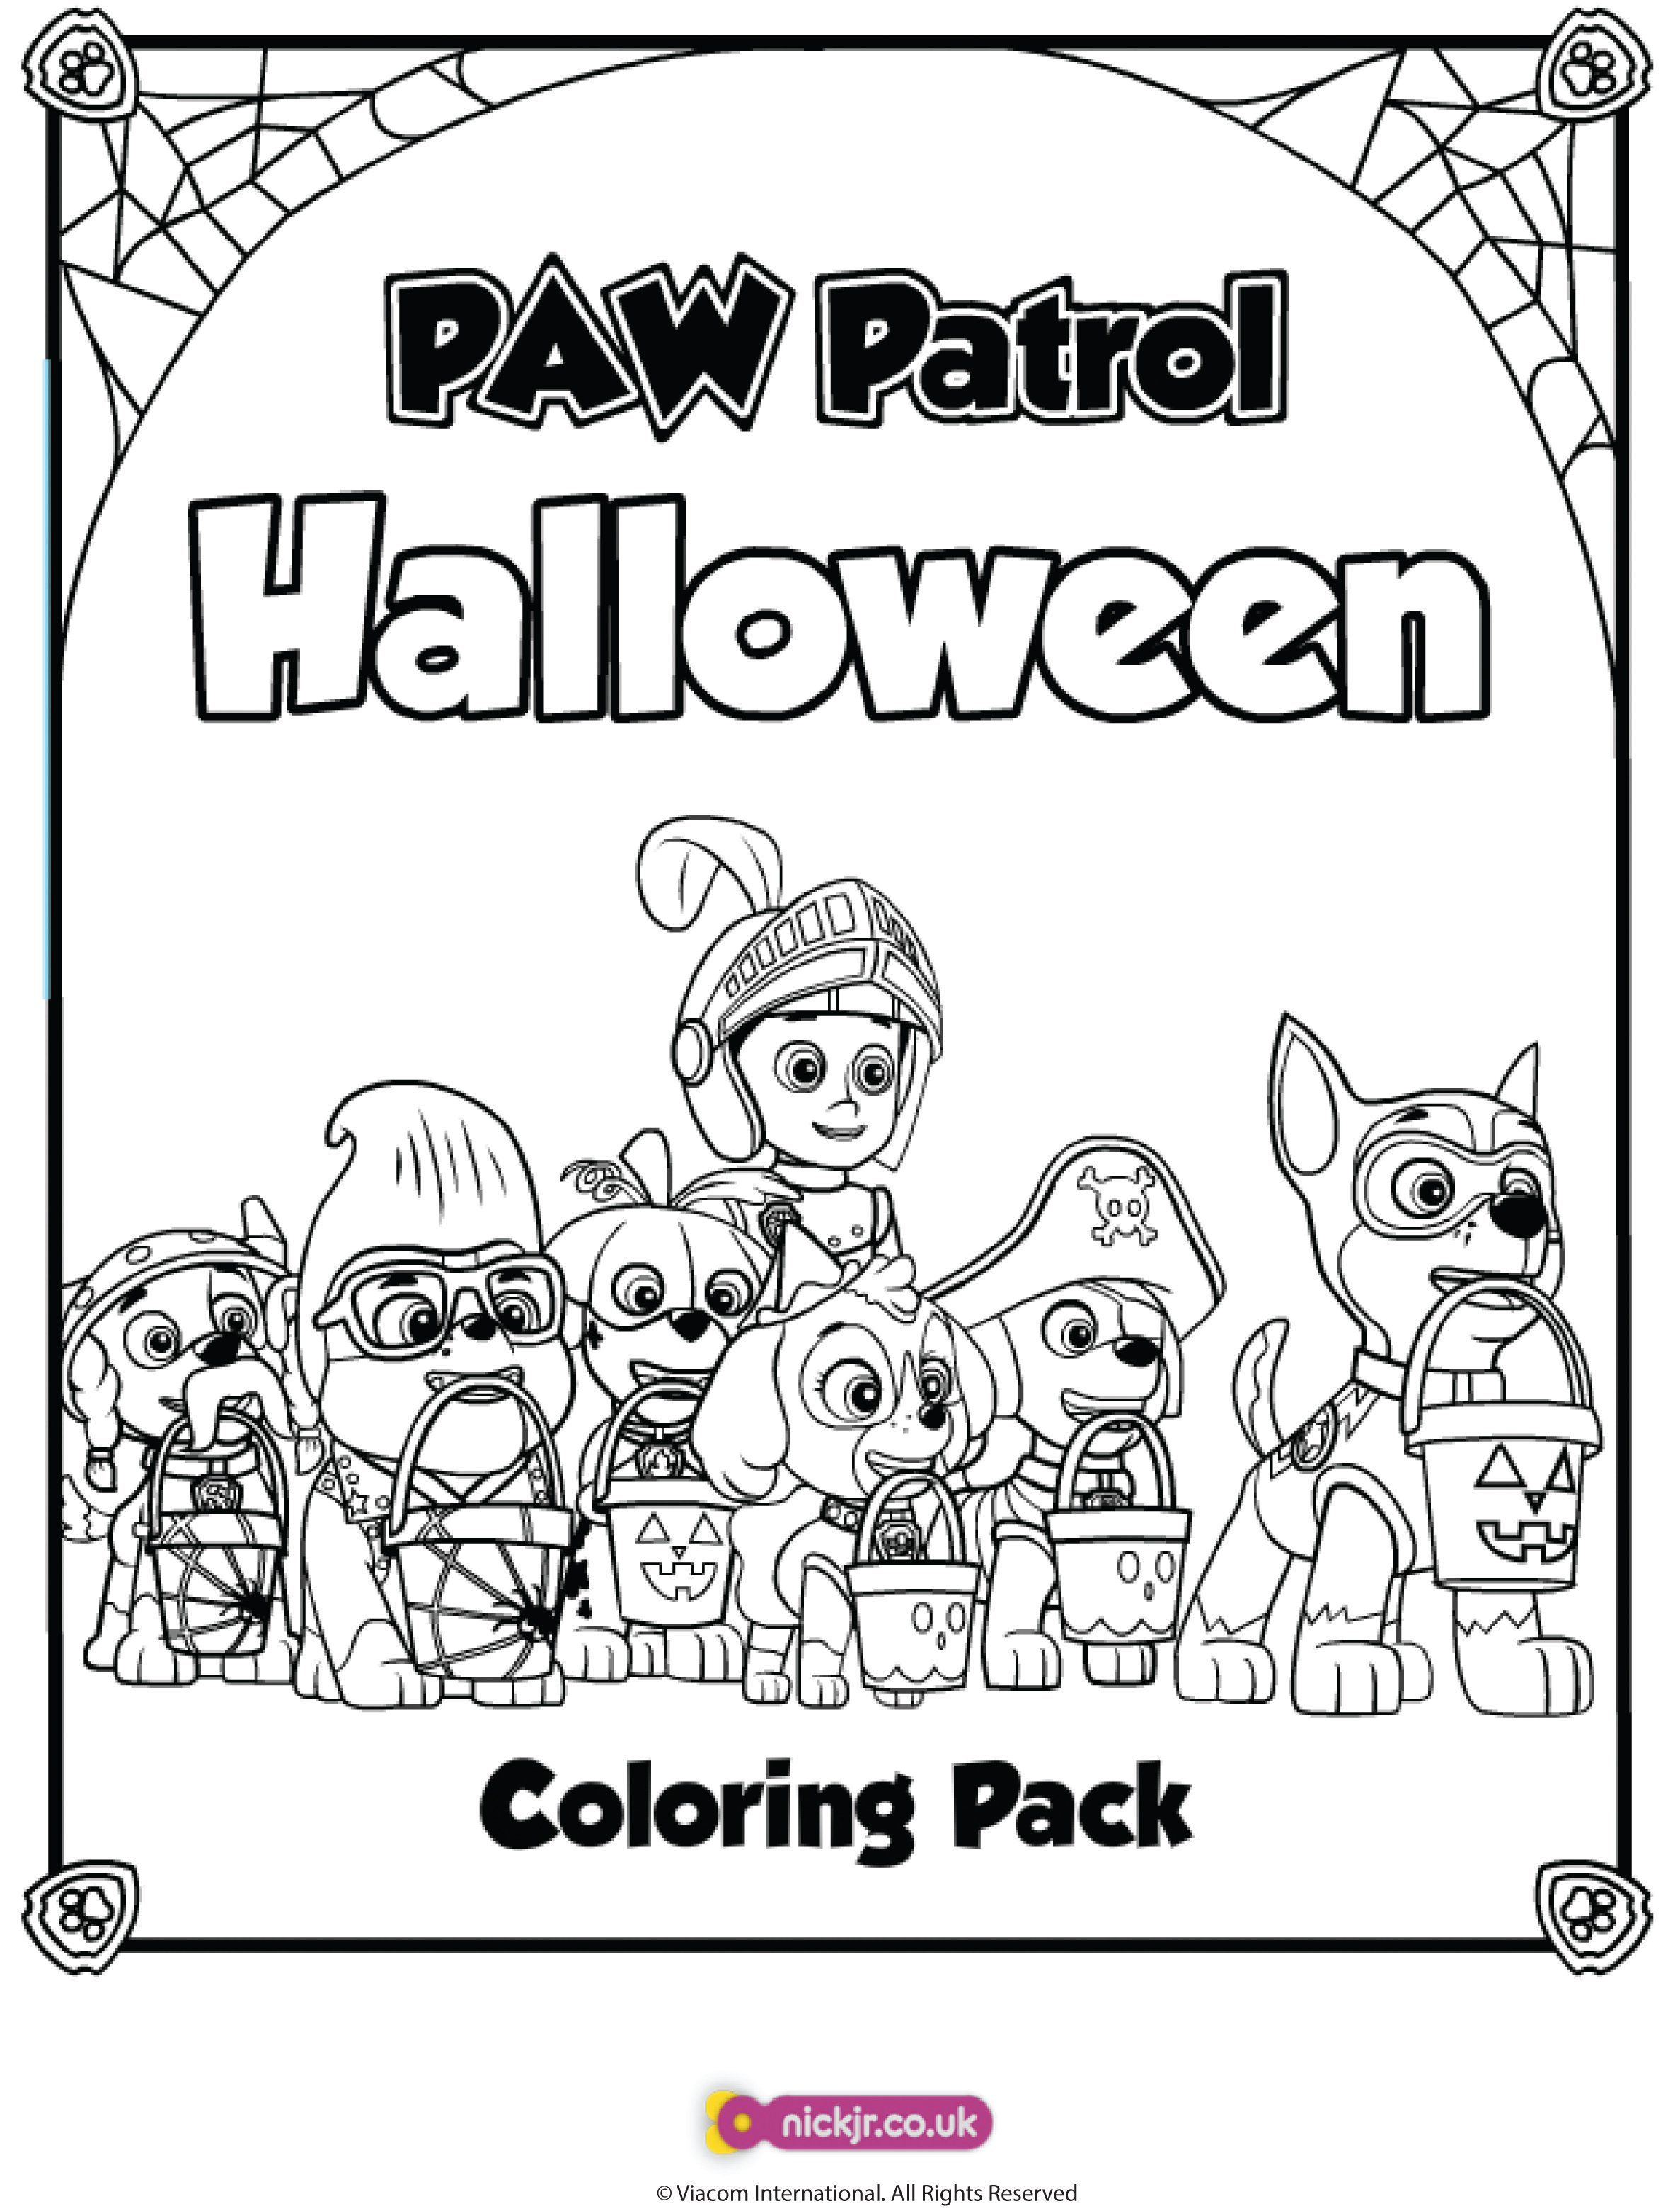 Printable coloring pages nick jr - Paw Patrol Halloween Coloring Pages